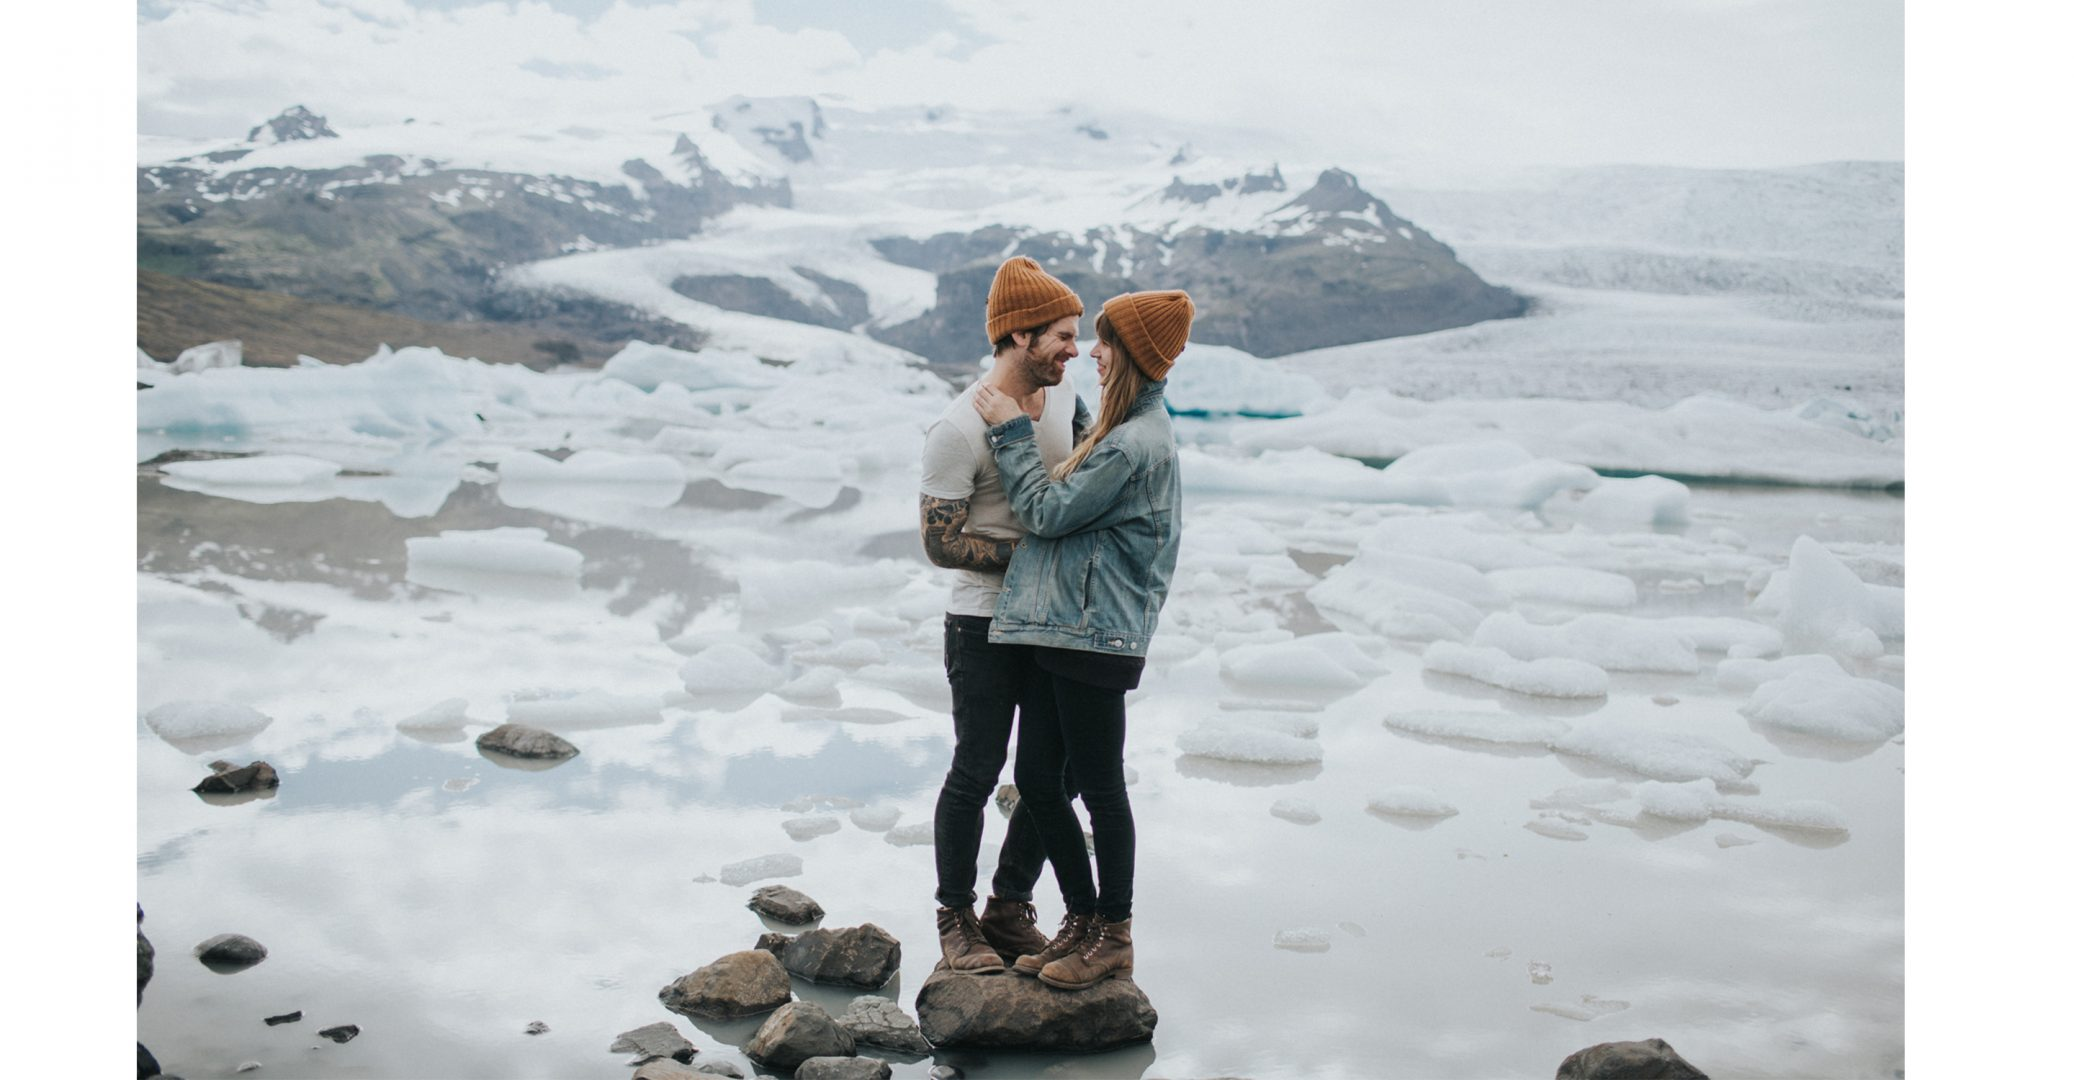 nyc based travel photographer vik iceland glacier lagoon engagement